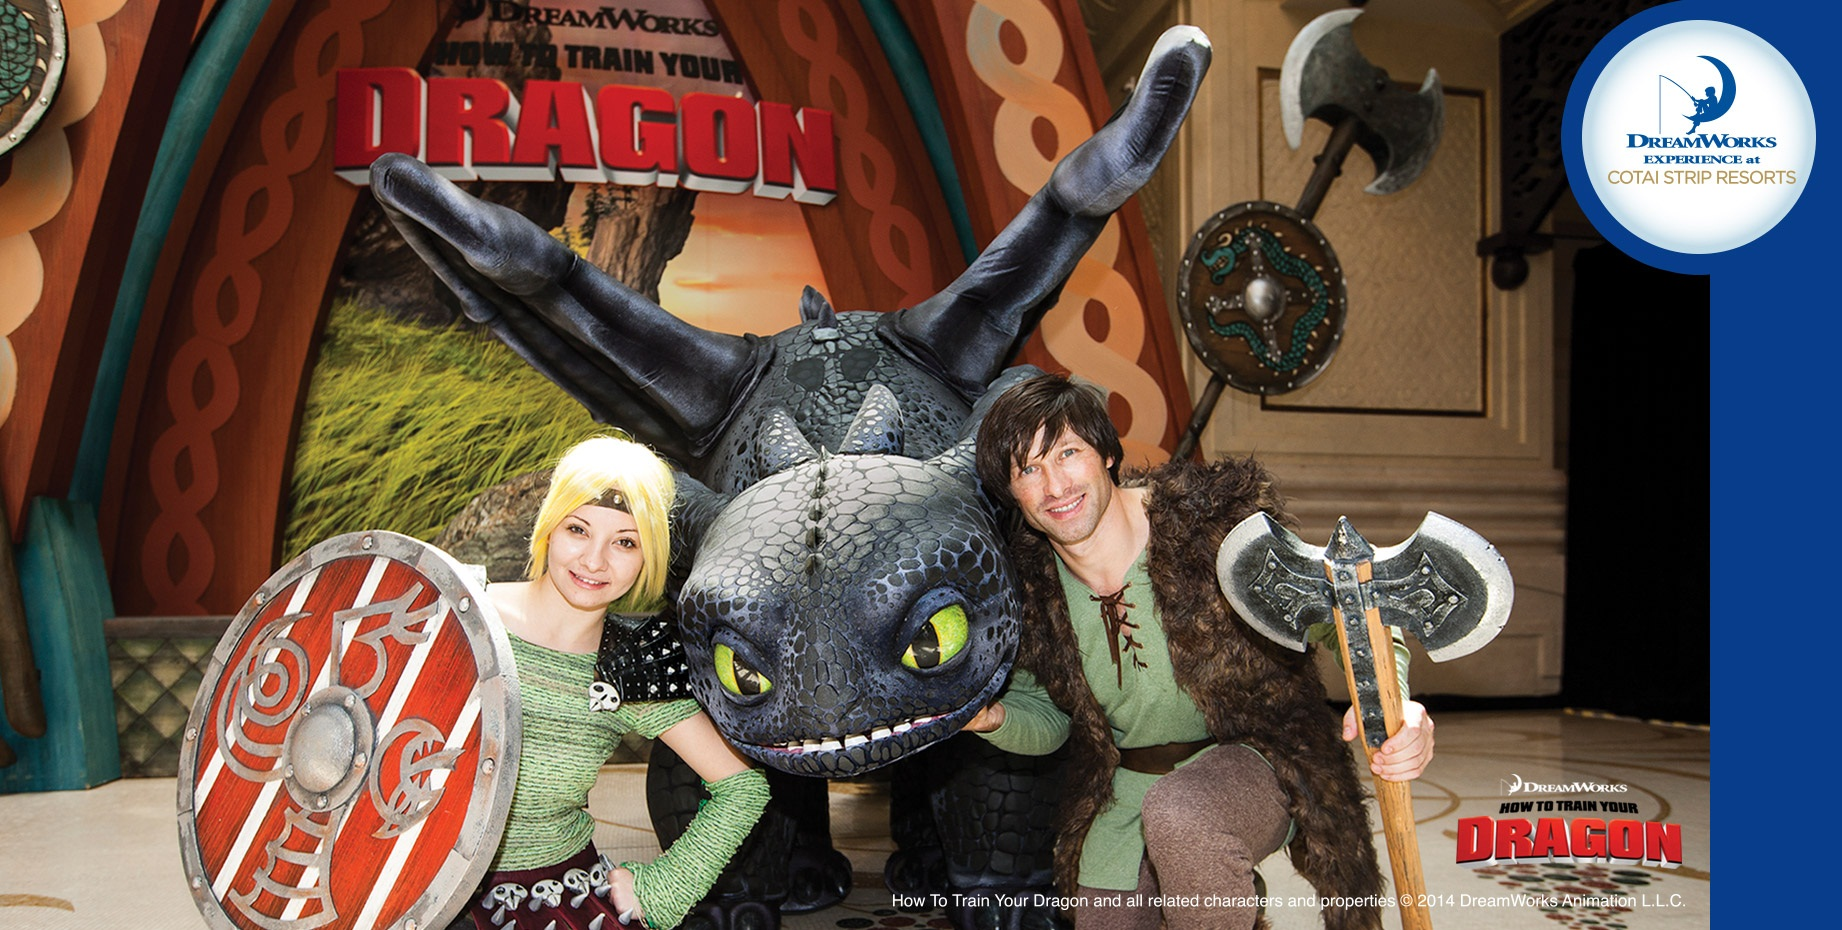 JOIN THE DRAGONS VIKING FEAST WITH DREAMWORKS GANG